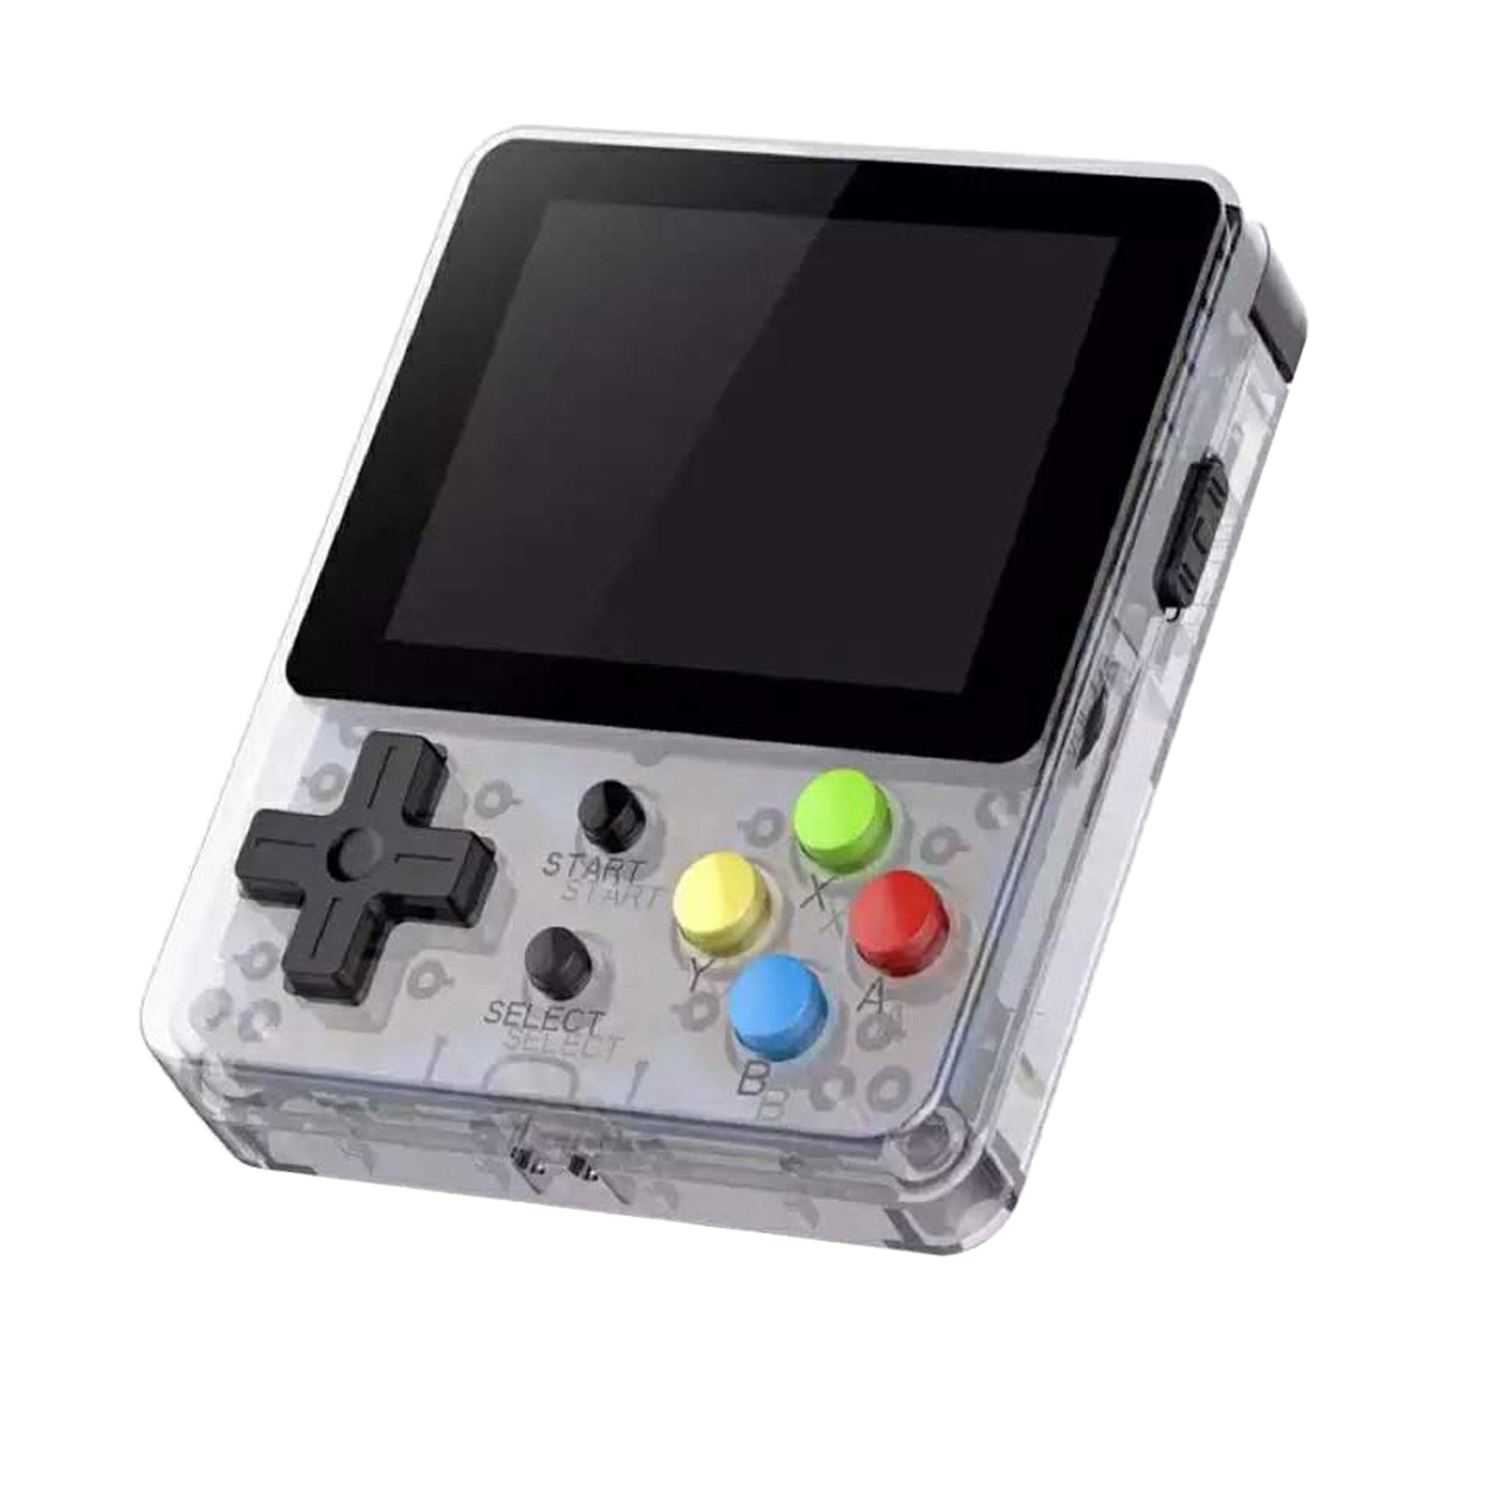 Portable Game Console 16G 2.6Inch Color Lcd For Ps1/Cps/Neogeo/Gba/Nes//Mdgbc/Gb/Atari Games Handheld Game Console